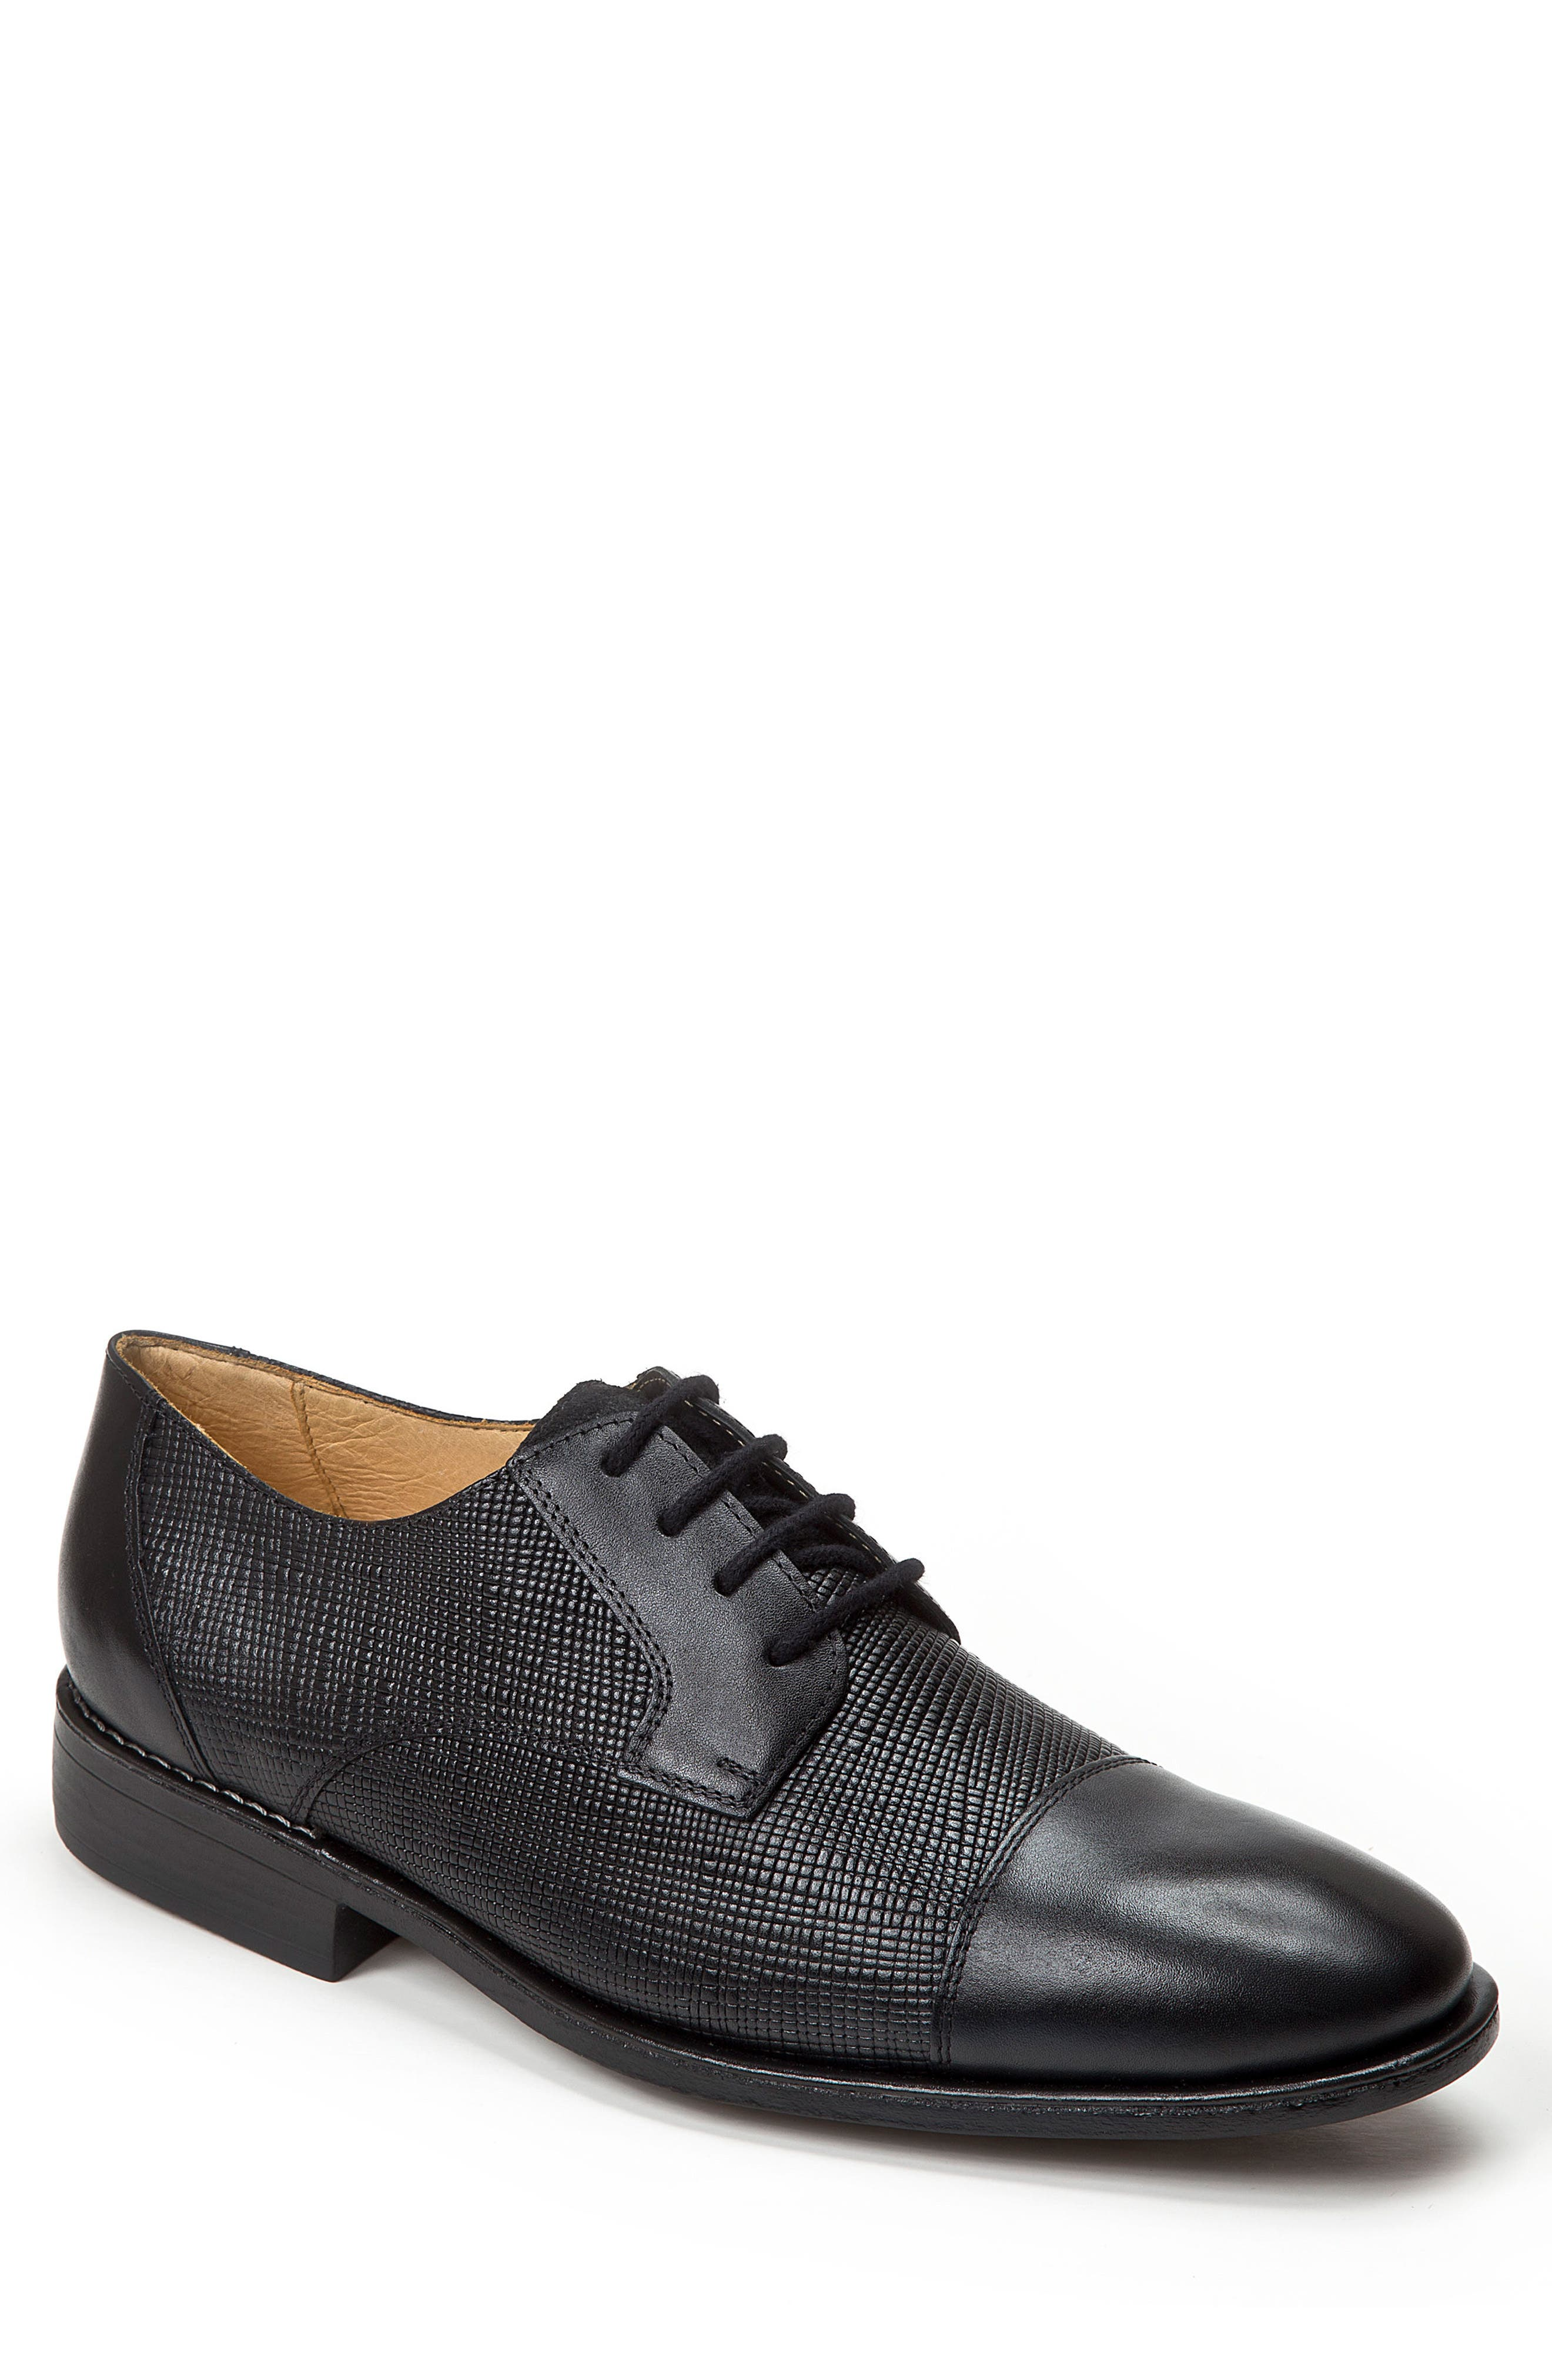 Alternate Image 1 Selected - Sandro Moscoloni Ronny Embossed Cap Toe Derby (Men)